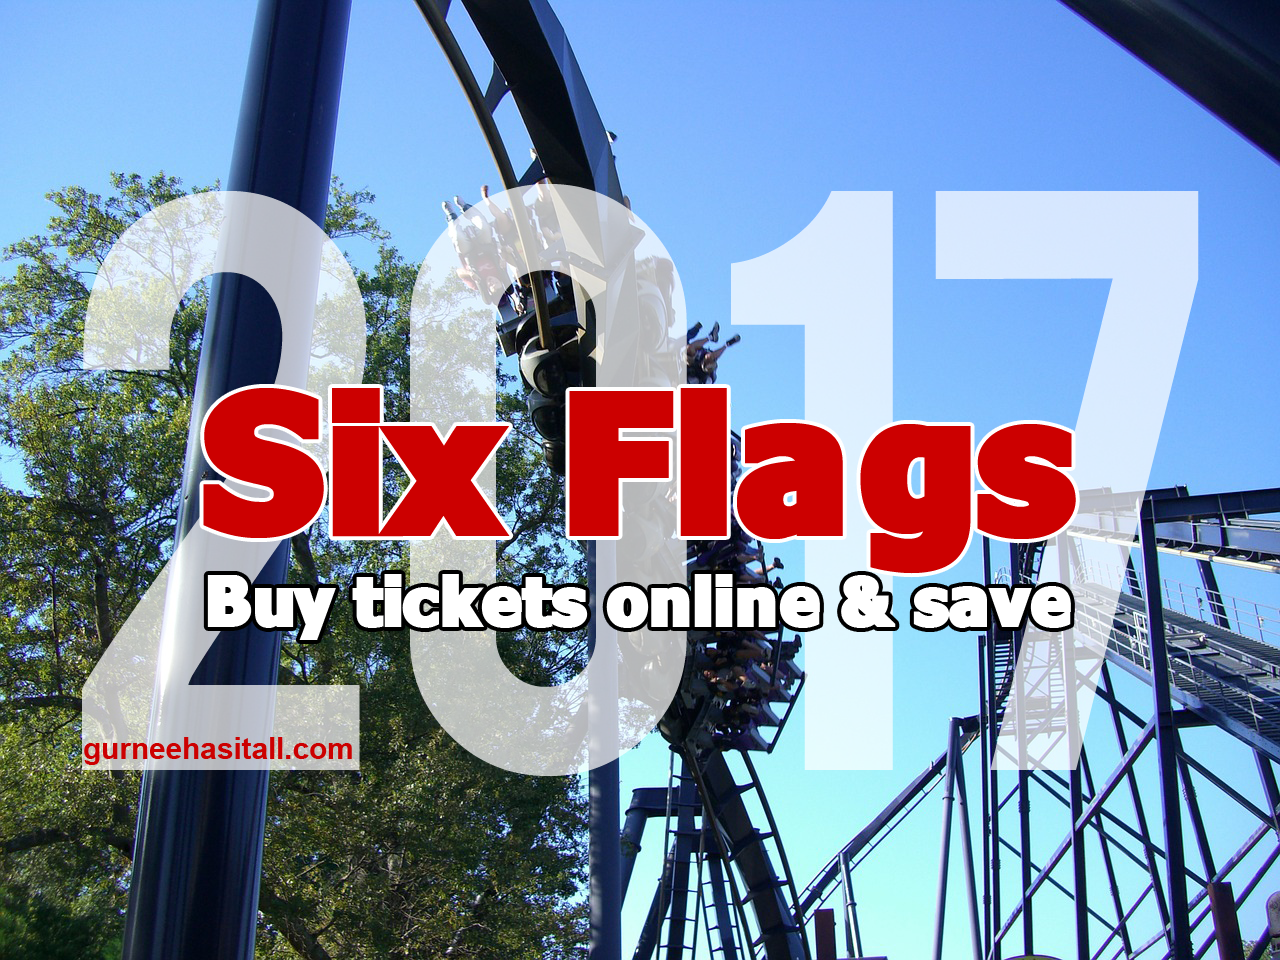 For the same price of a general admission ticket, you can buy a Thrill Pass and get unlimited admission to Six Flags Great America. That's right! You can use the Thrill Pass through September 3 for unlimited visits to the park (Does not include Fright Fest).